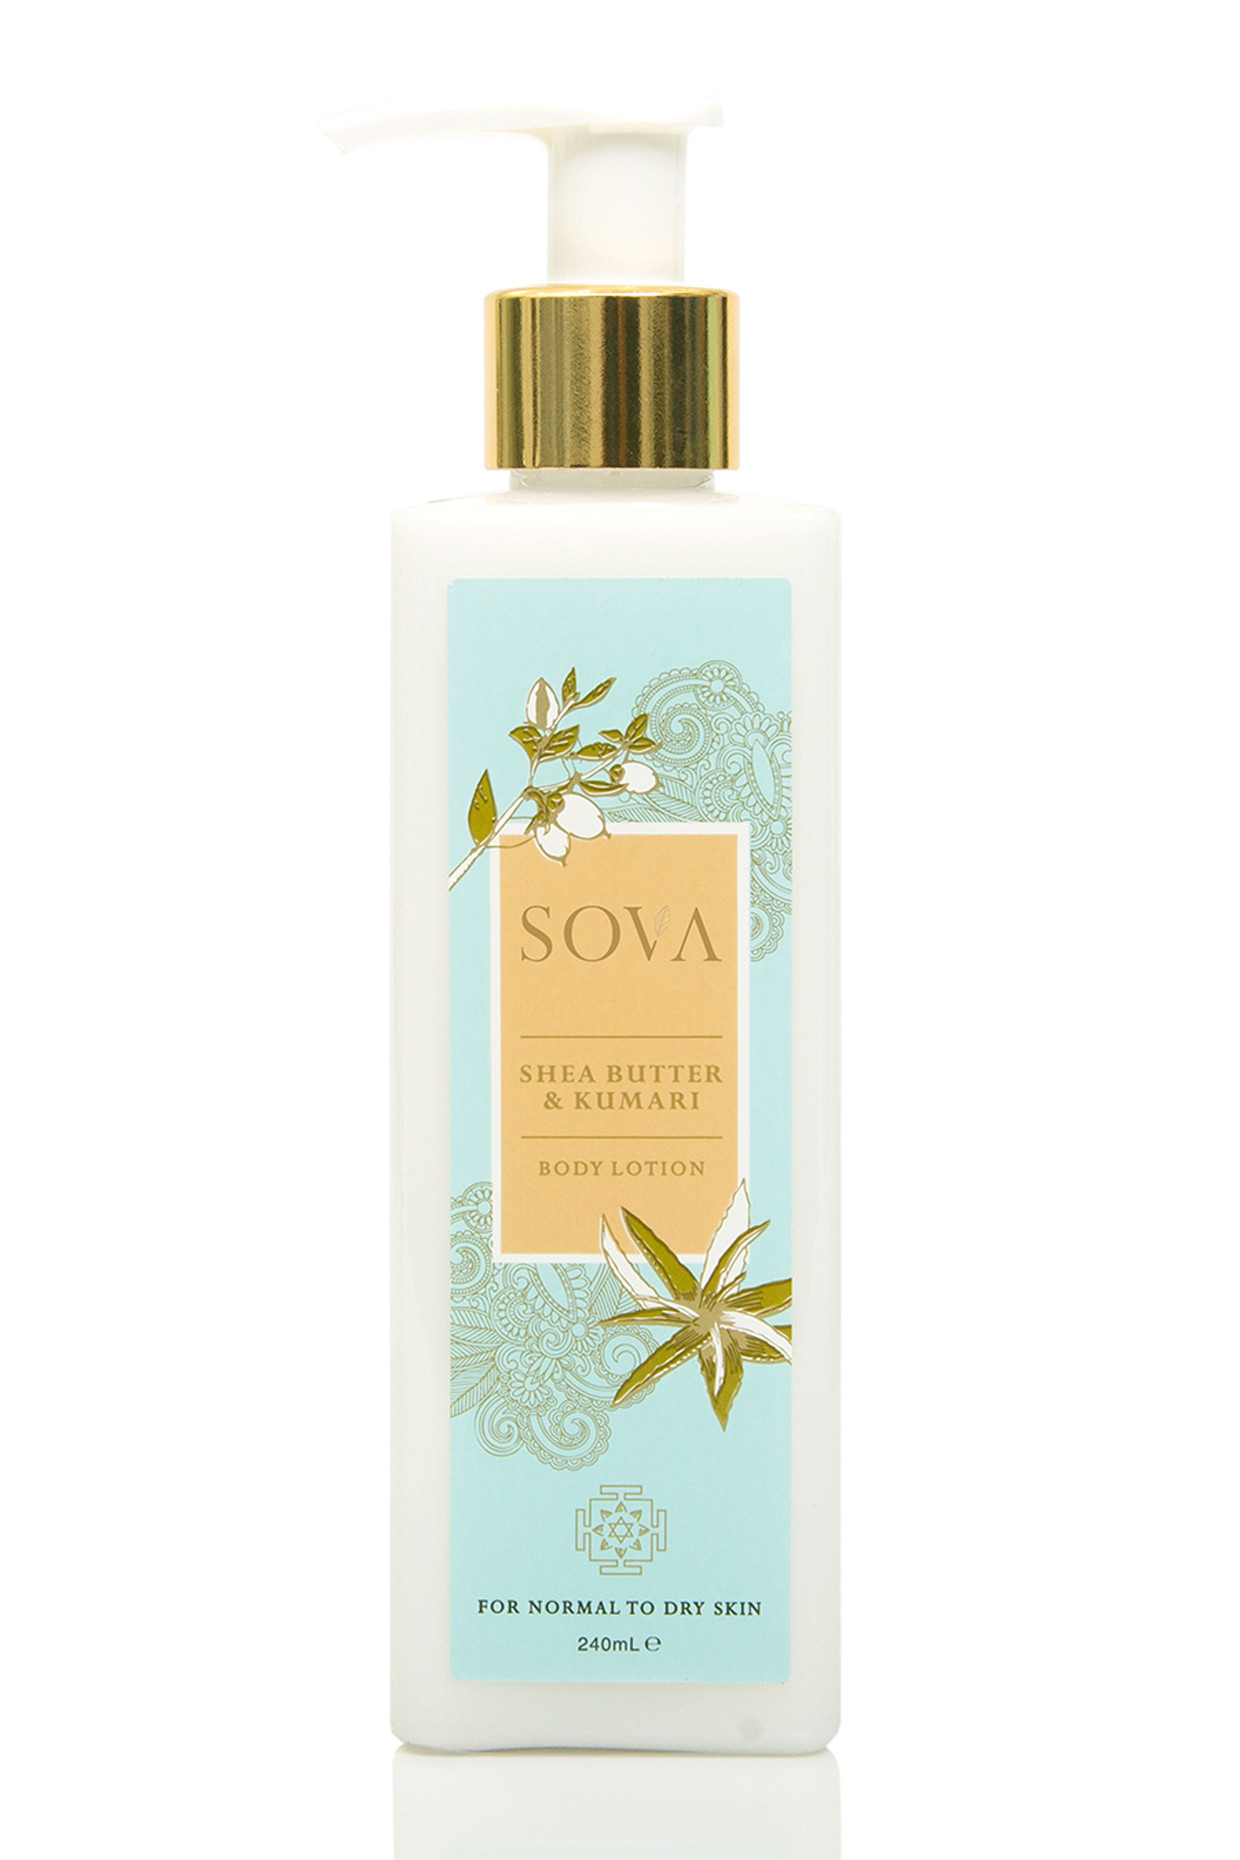 Kumari & Butter Body Lotion For Normal to Dry Skin by SOVA